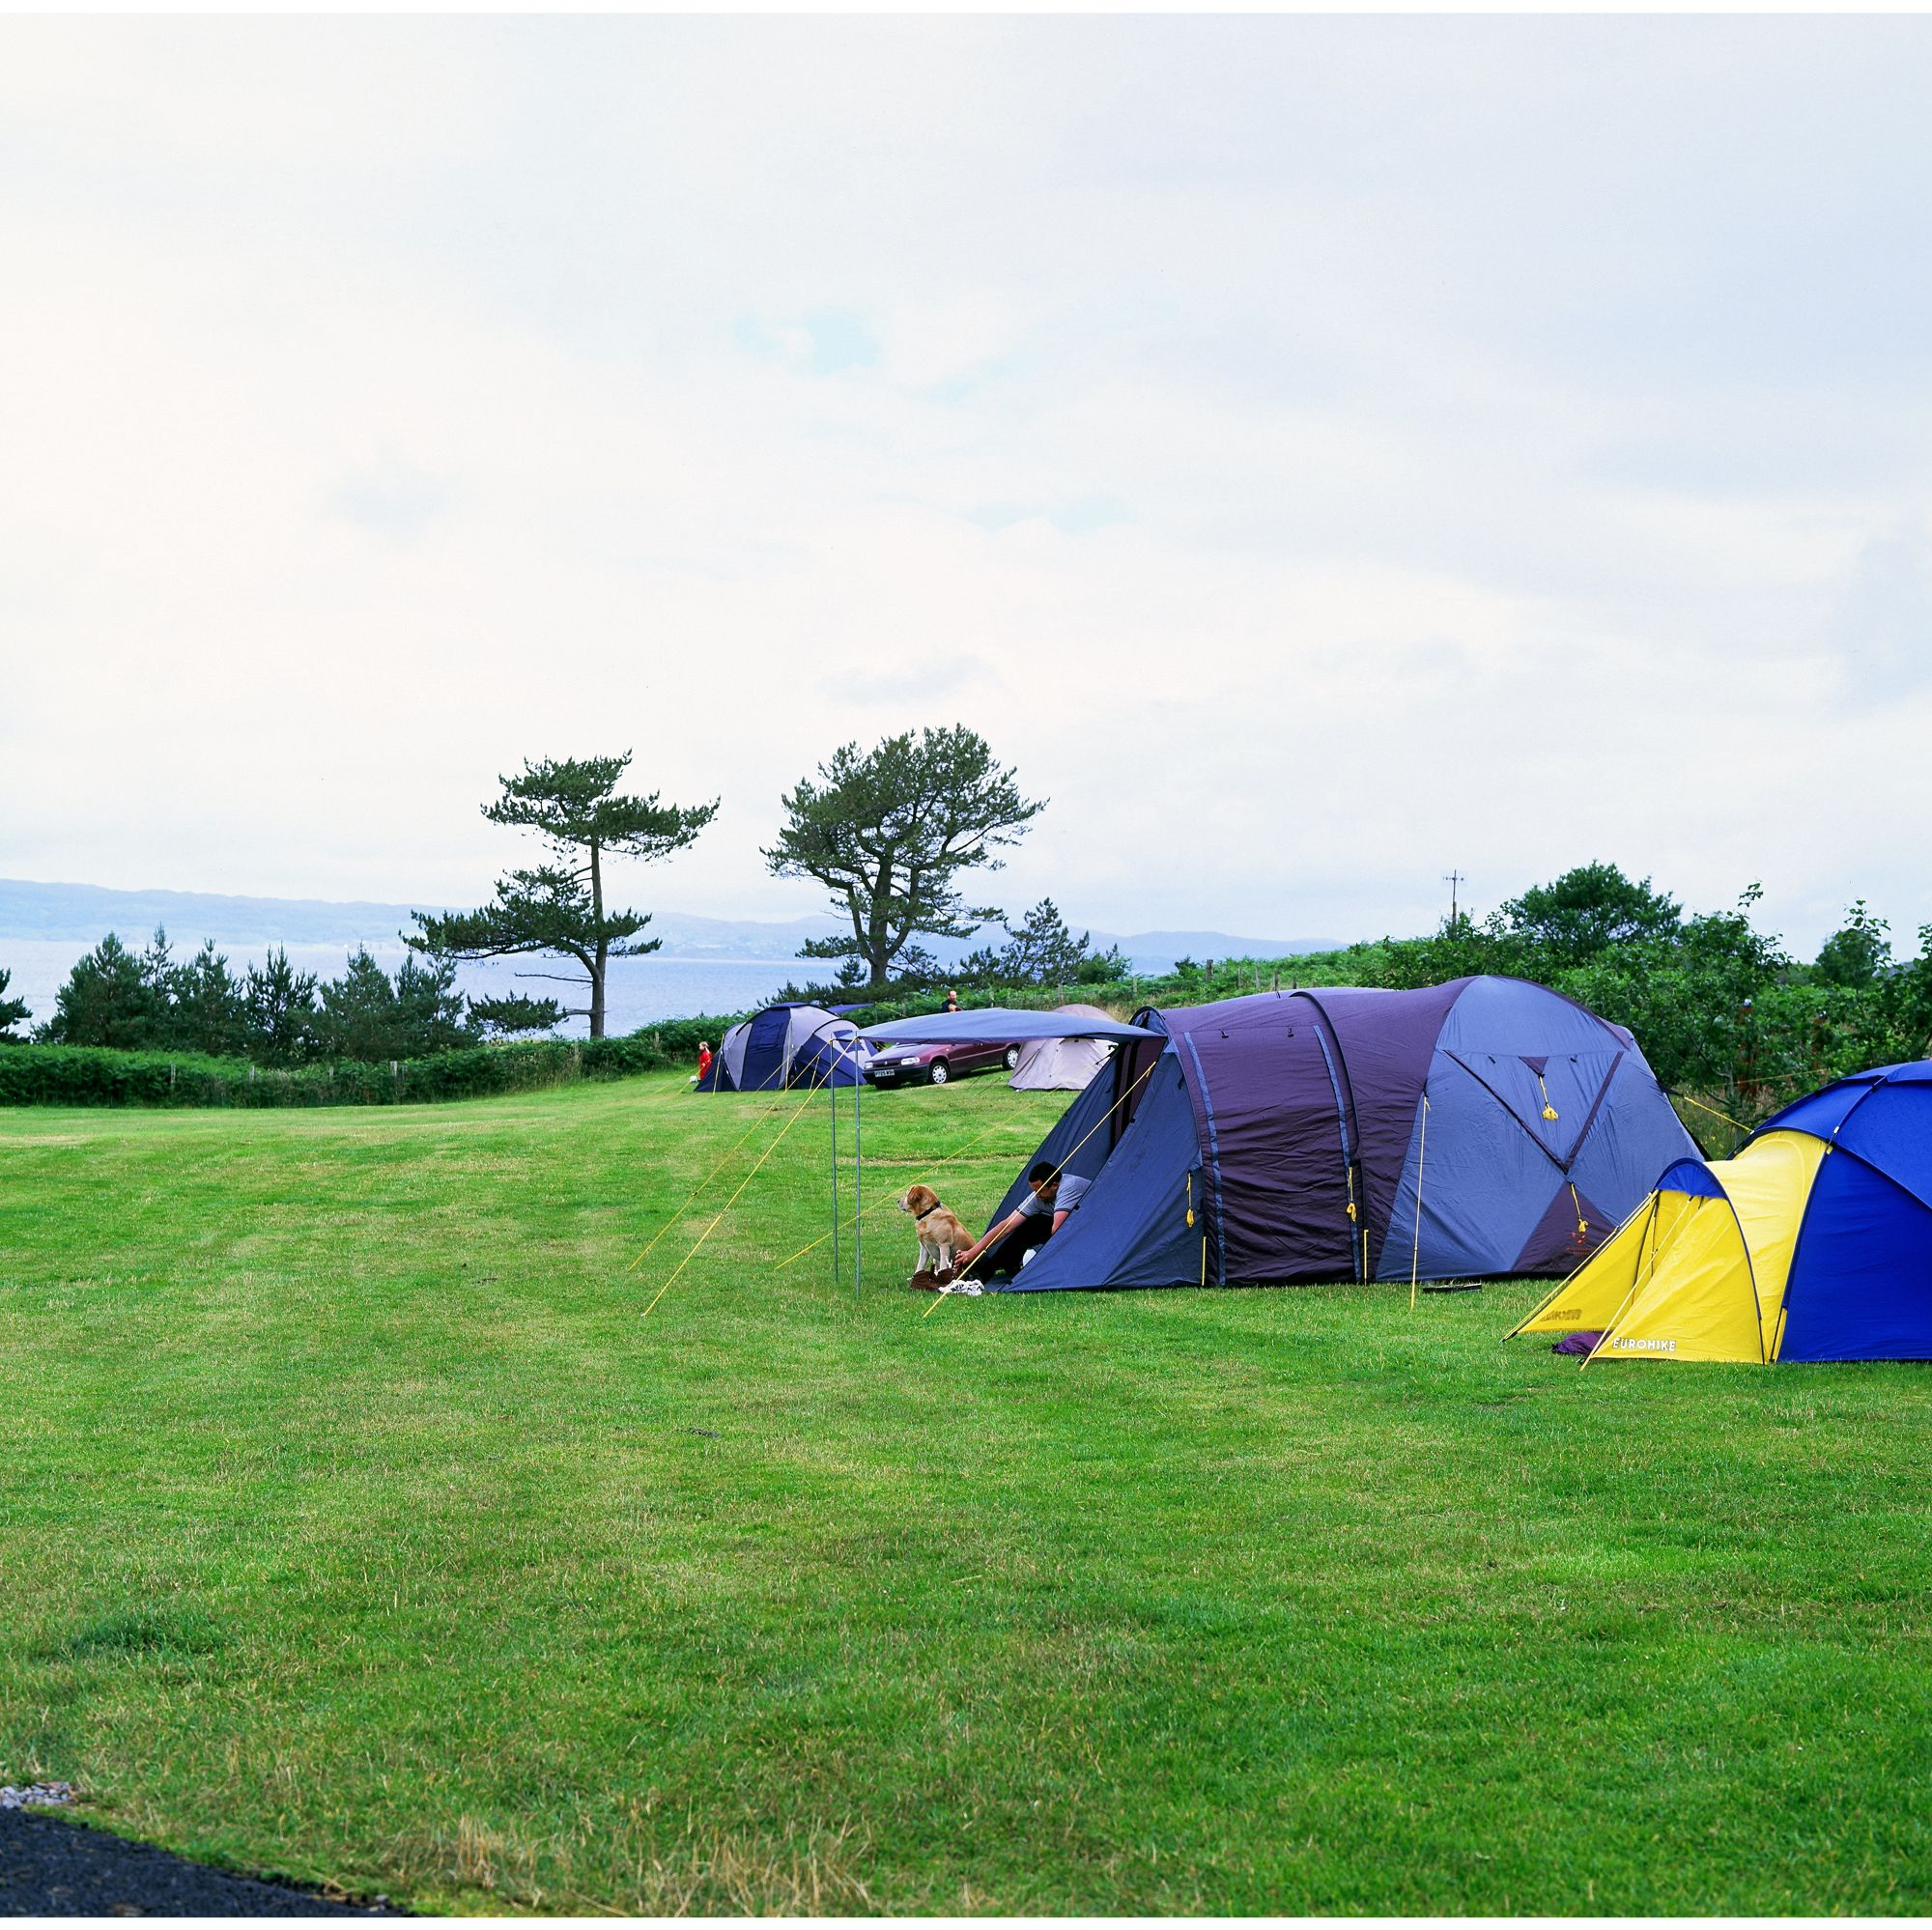 so thoroughly salubrious, and why everybody seems so relaxed and friendly while camping at Camusdarach.